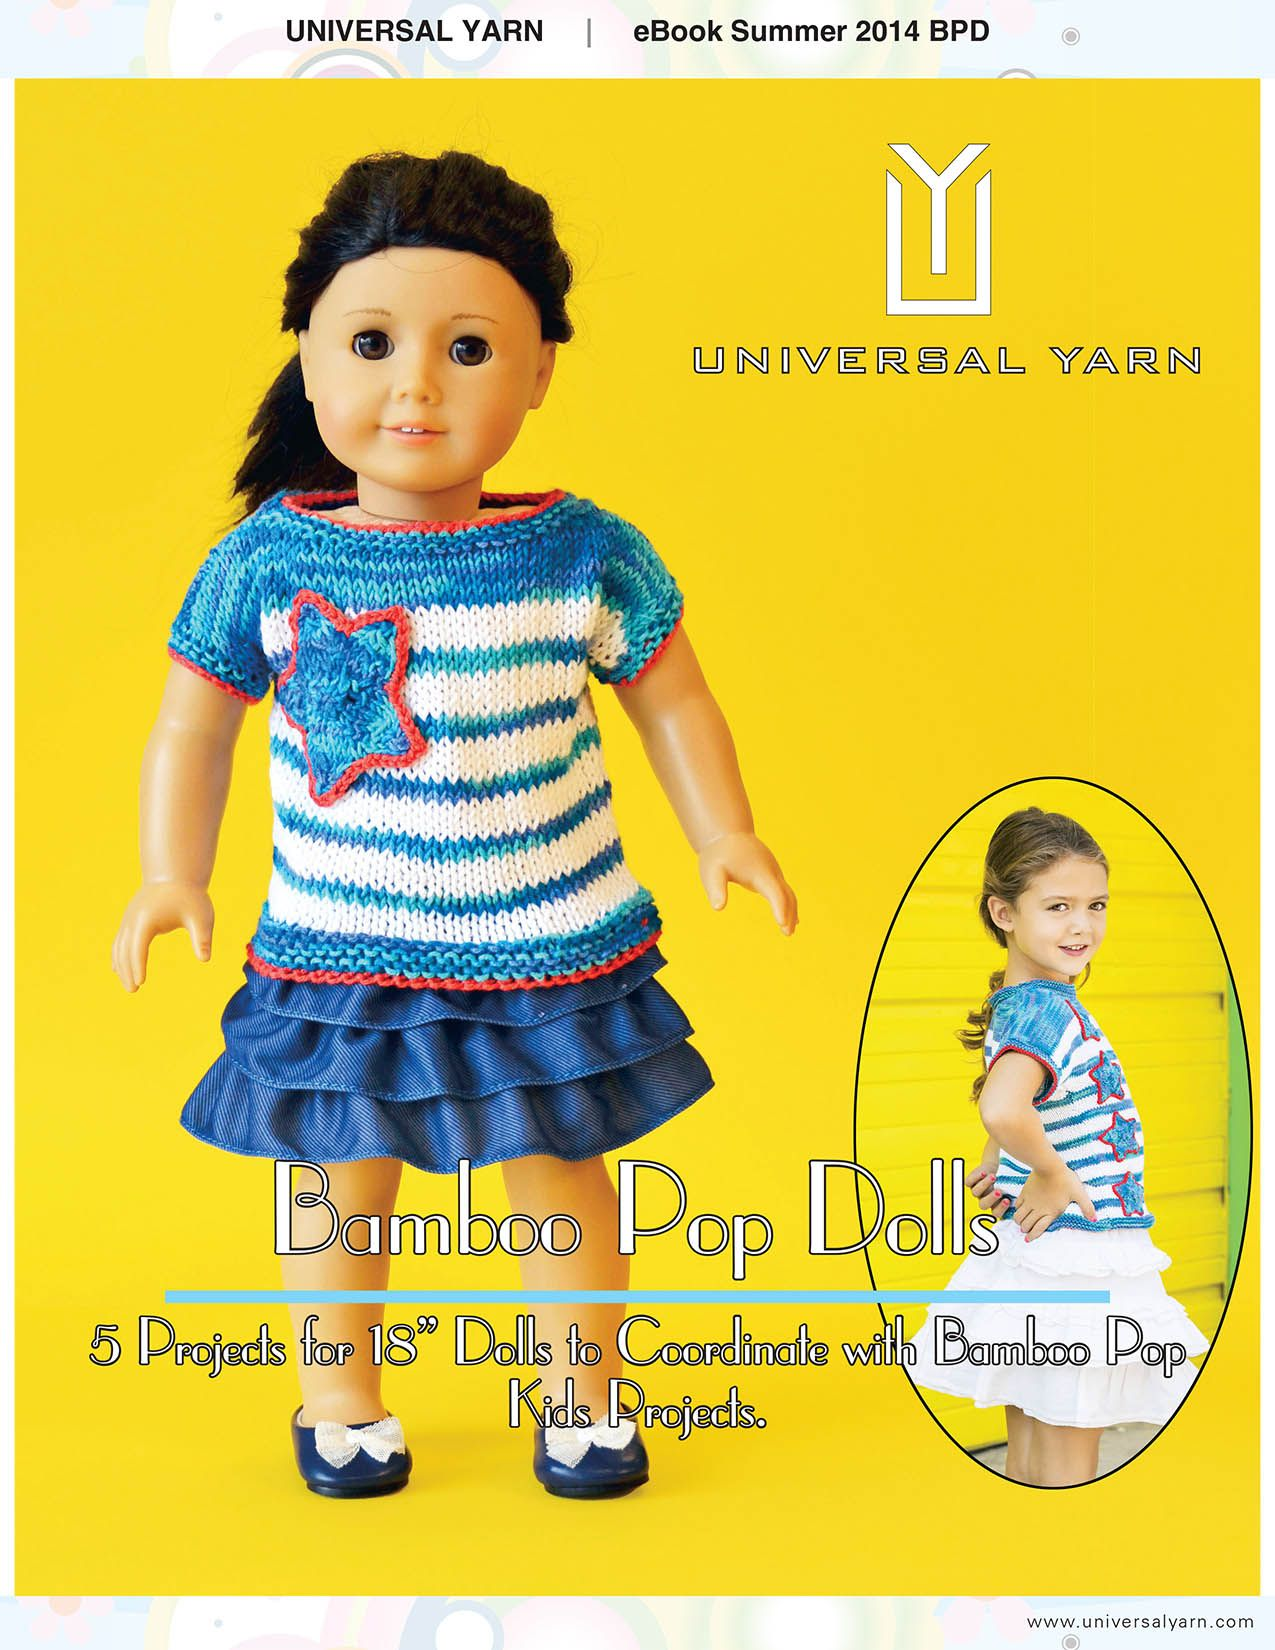 Free knitting patterns five patterns for 18 dolls that match free knitting patterns five patterns for 18 dolls that match the popular bamboo pop bankloansurffo Choice Image